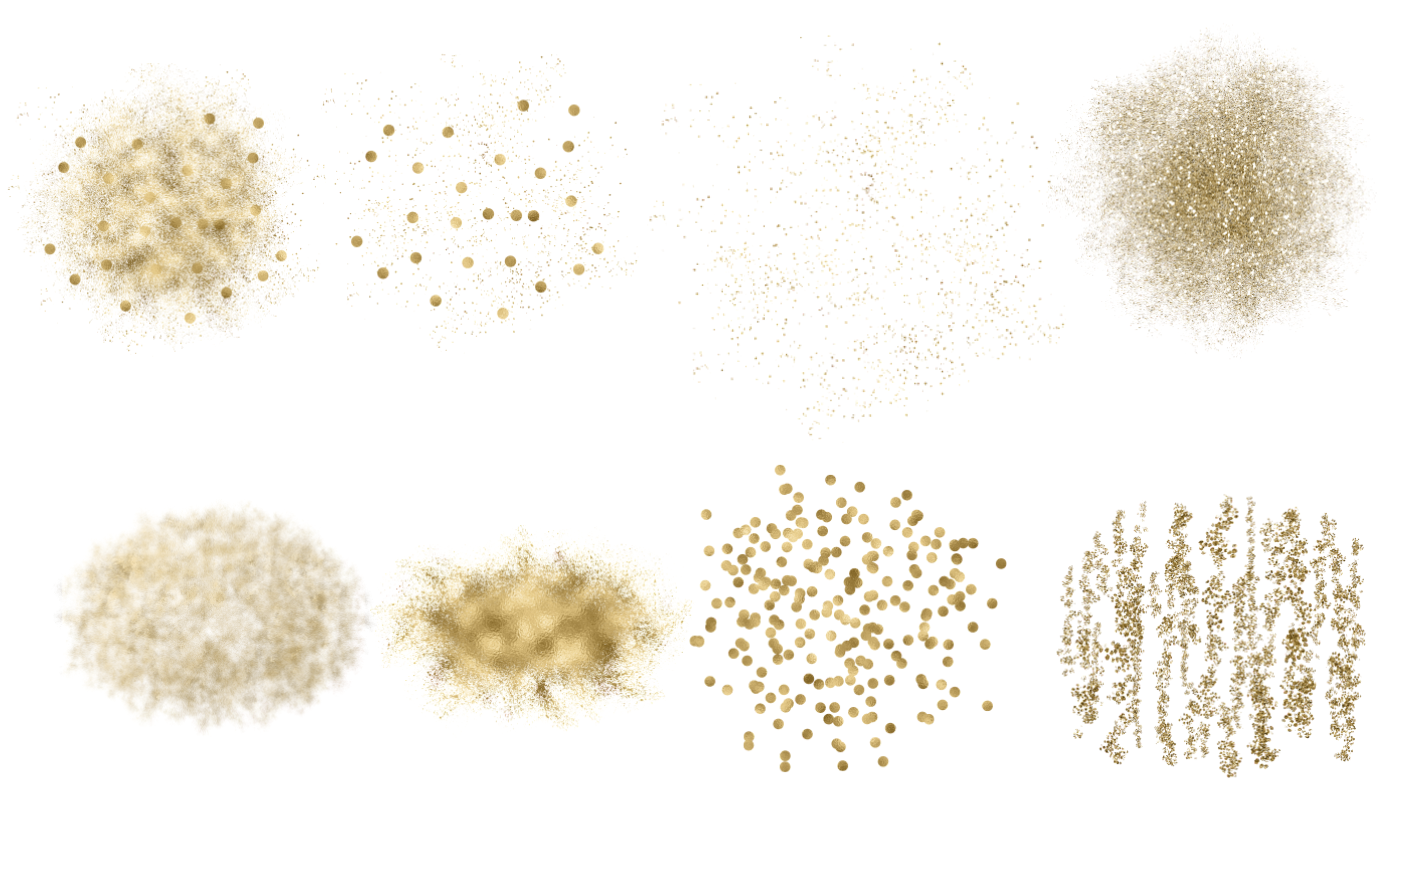 Gold Glitter Backgrounds, Gold Design PNG Elements example image 3